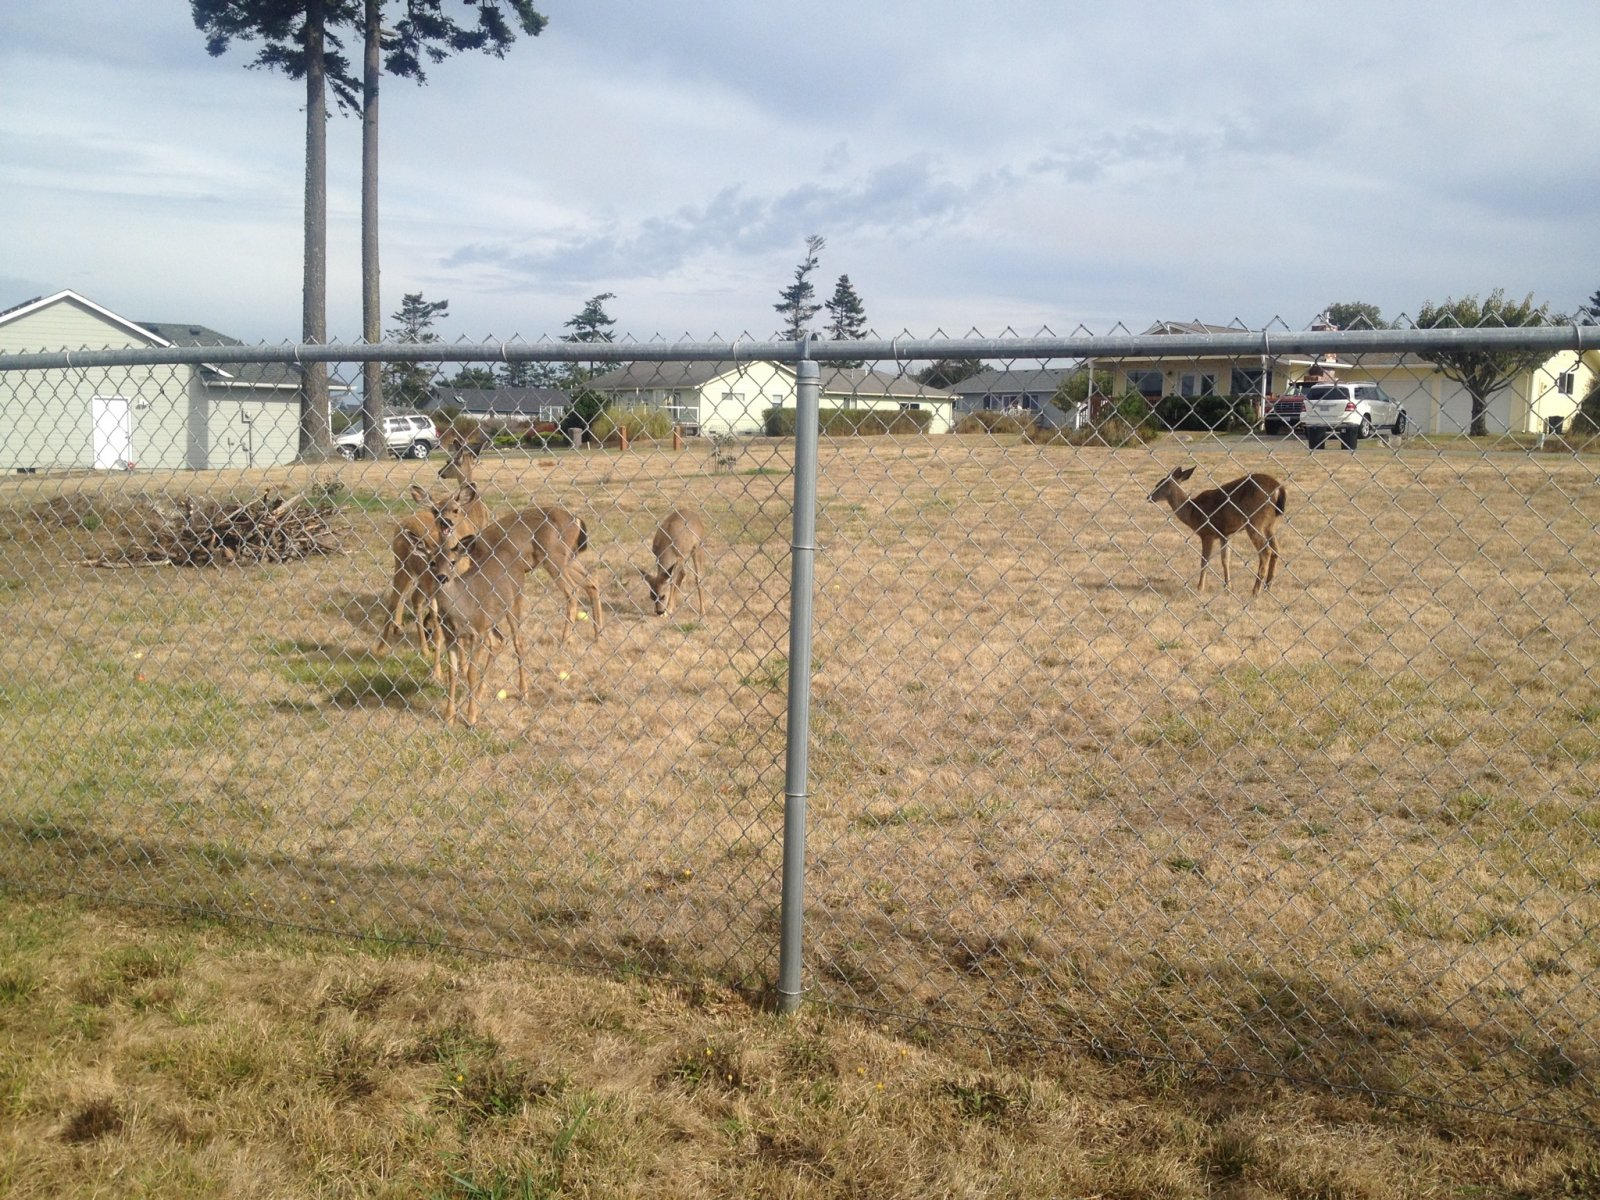 The local deer seem to like it